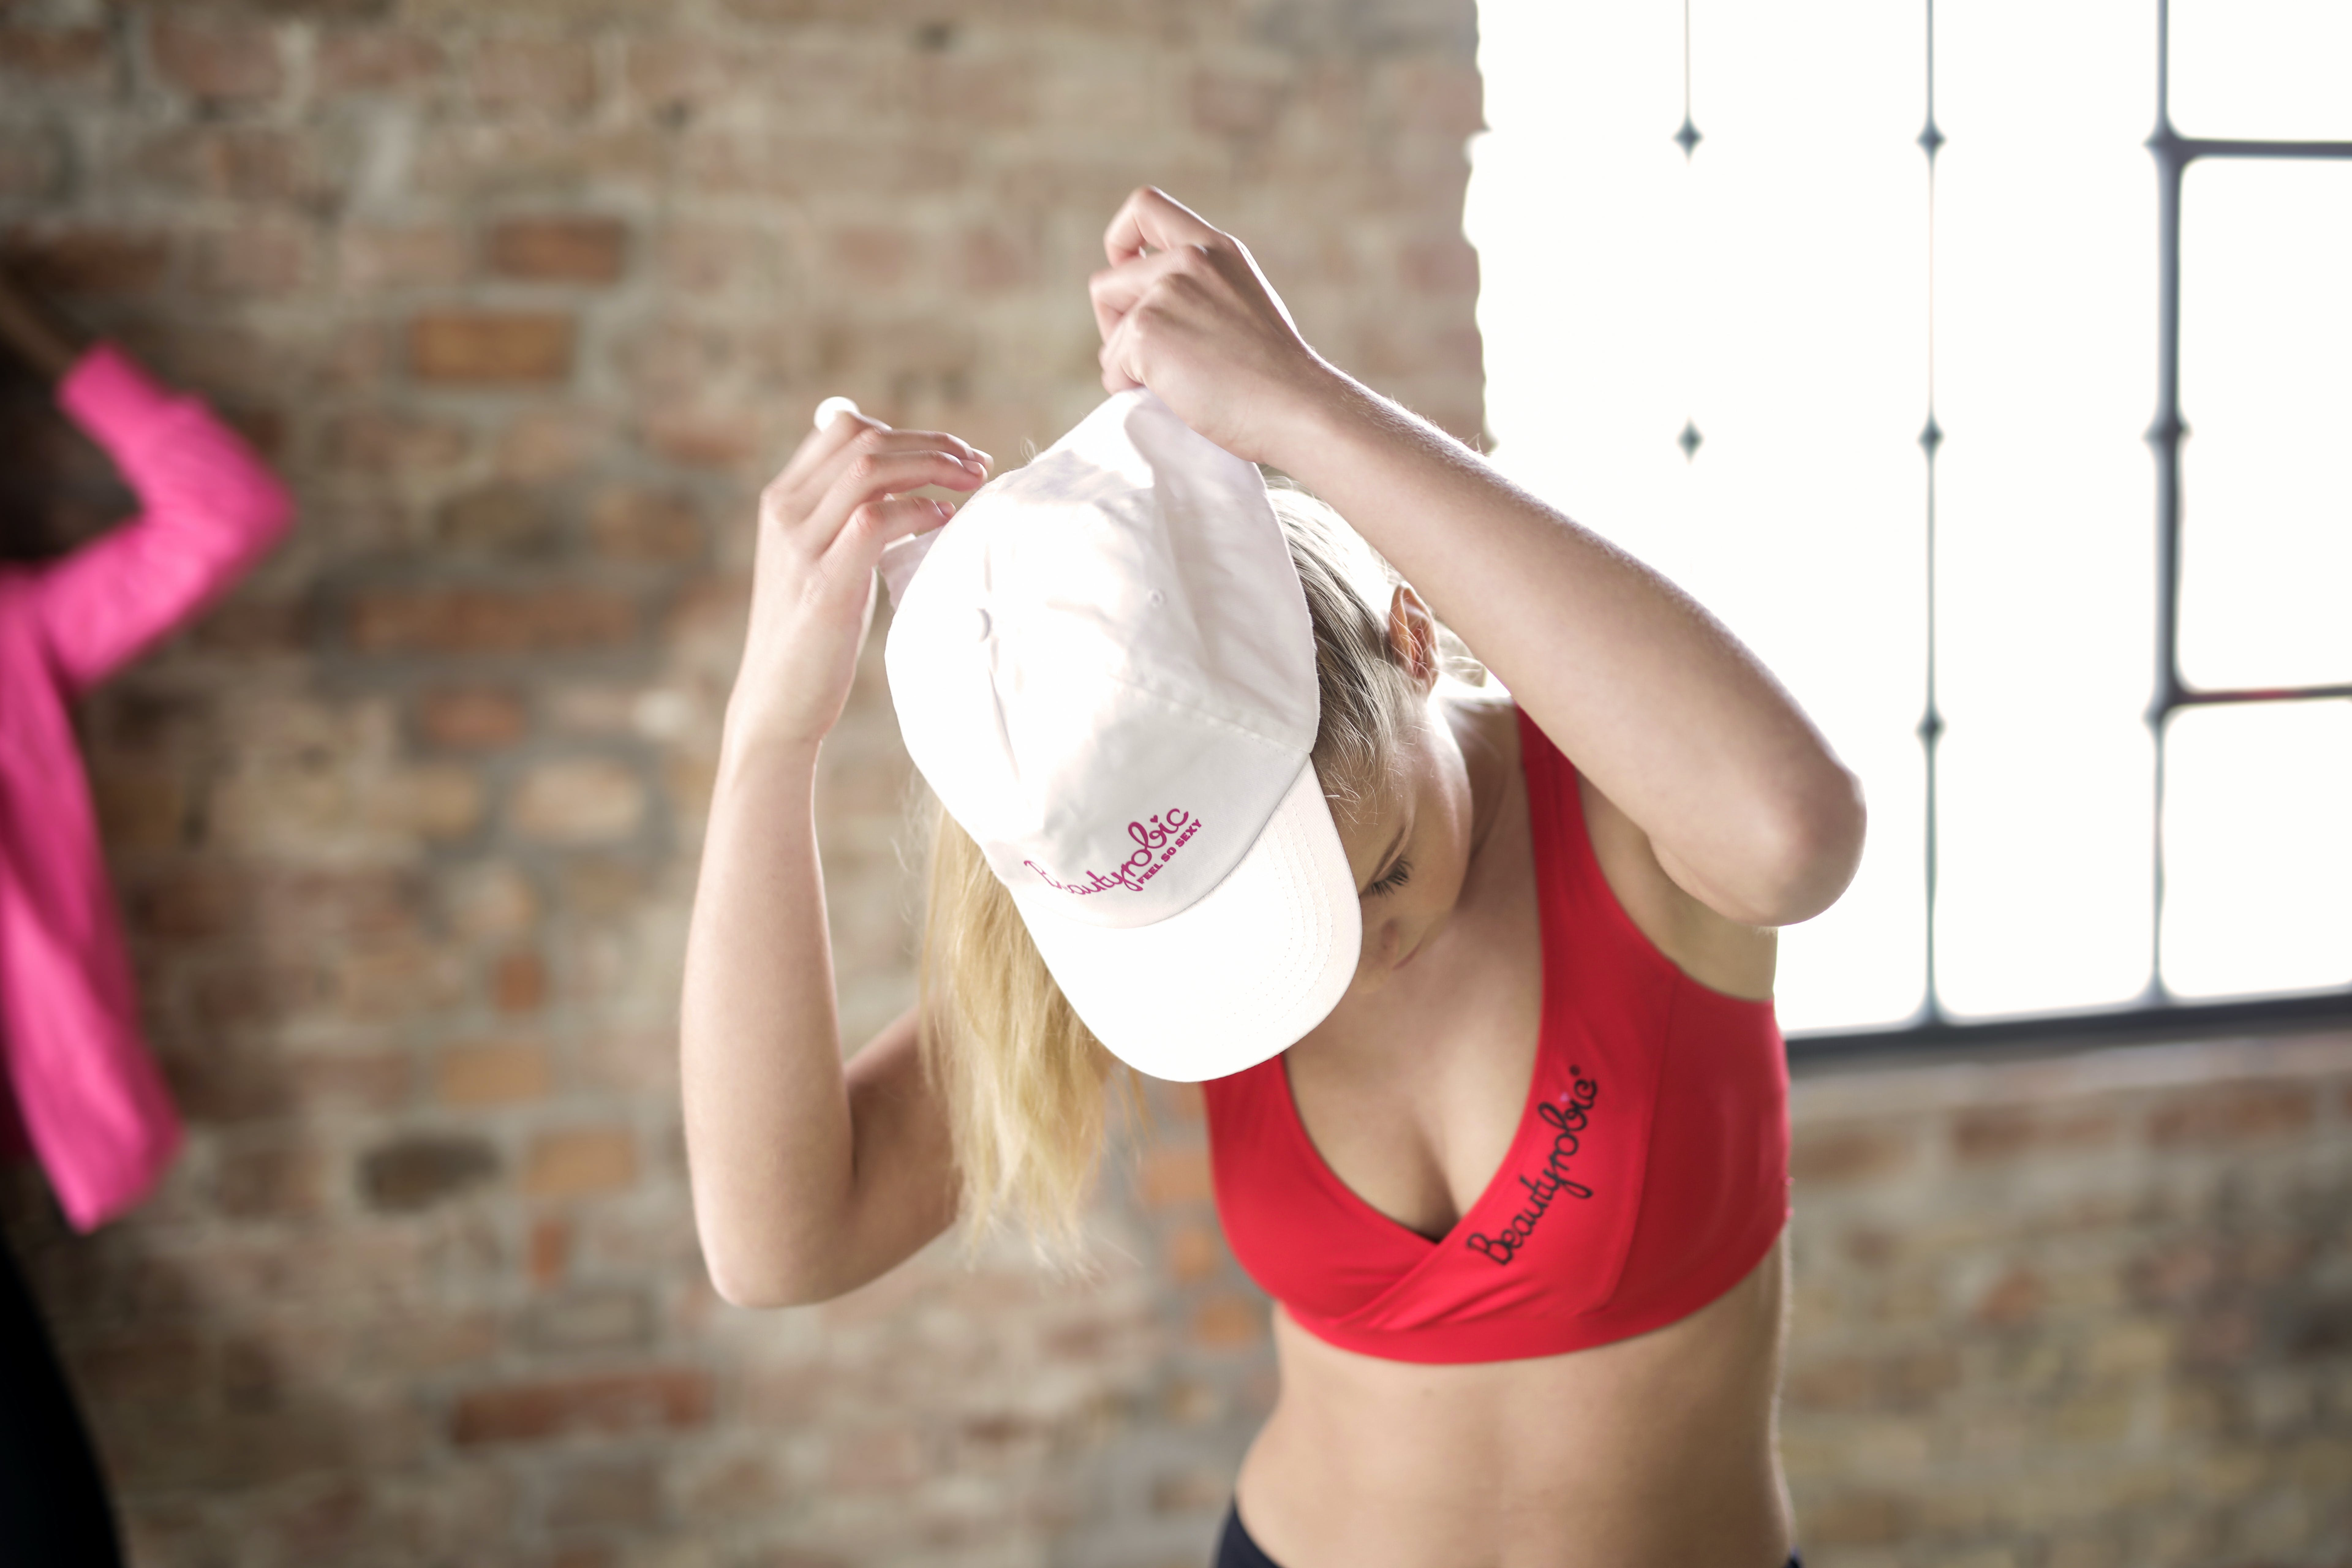 Woman Wearing Red Crop Top and White Cap